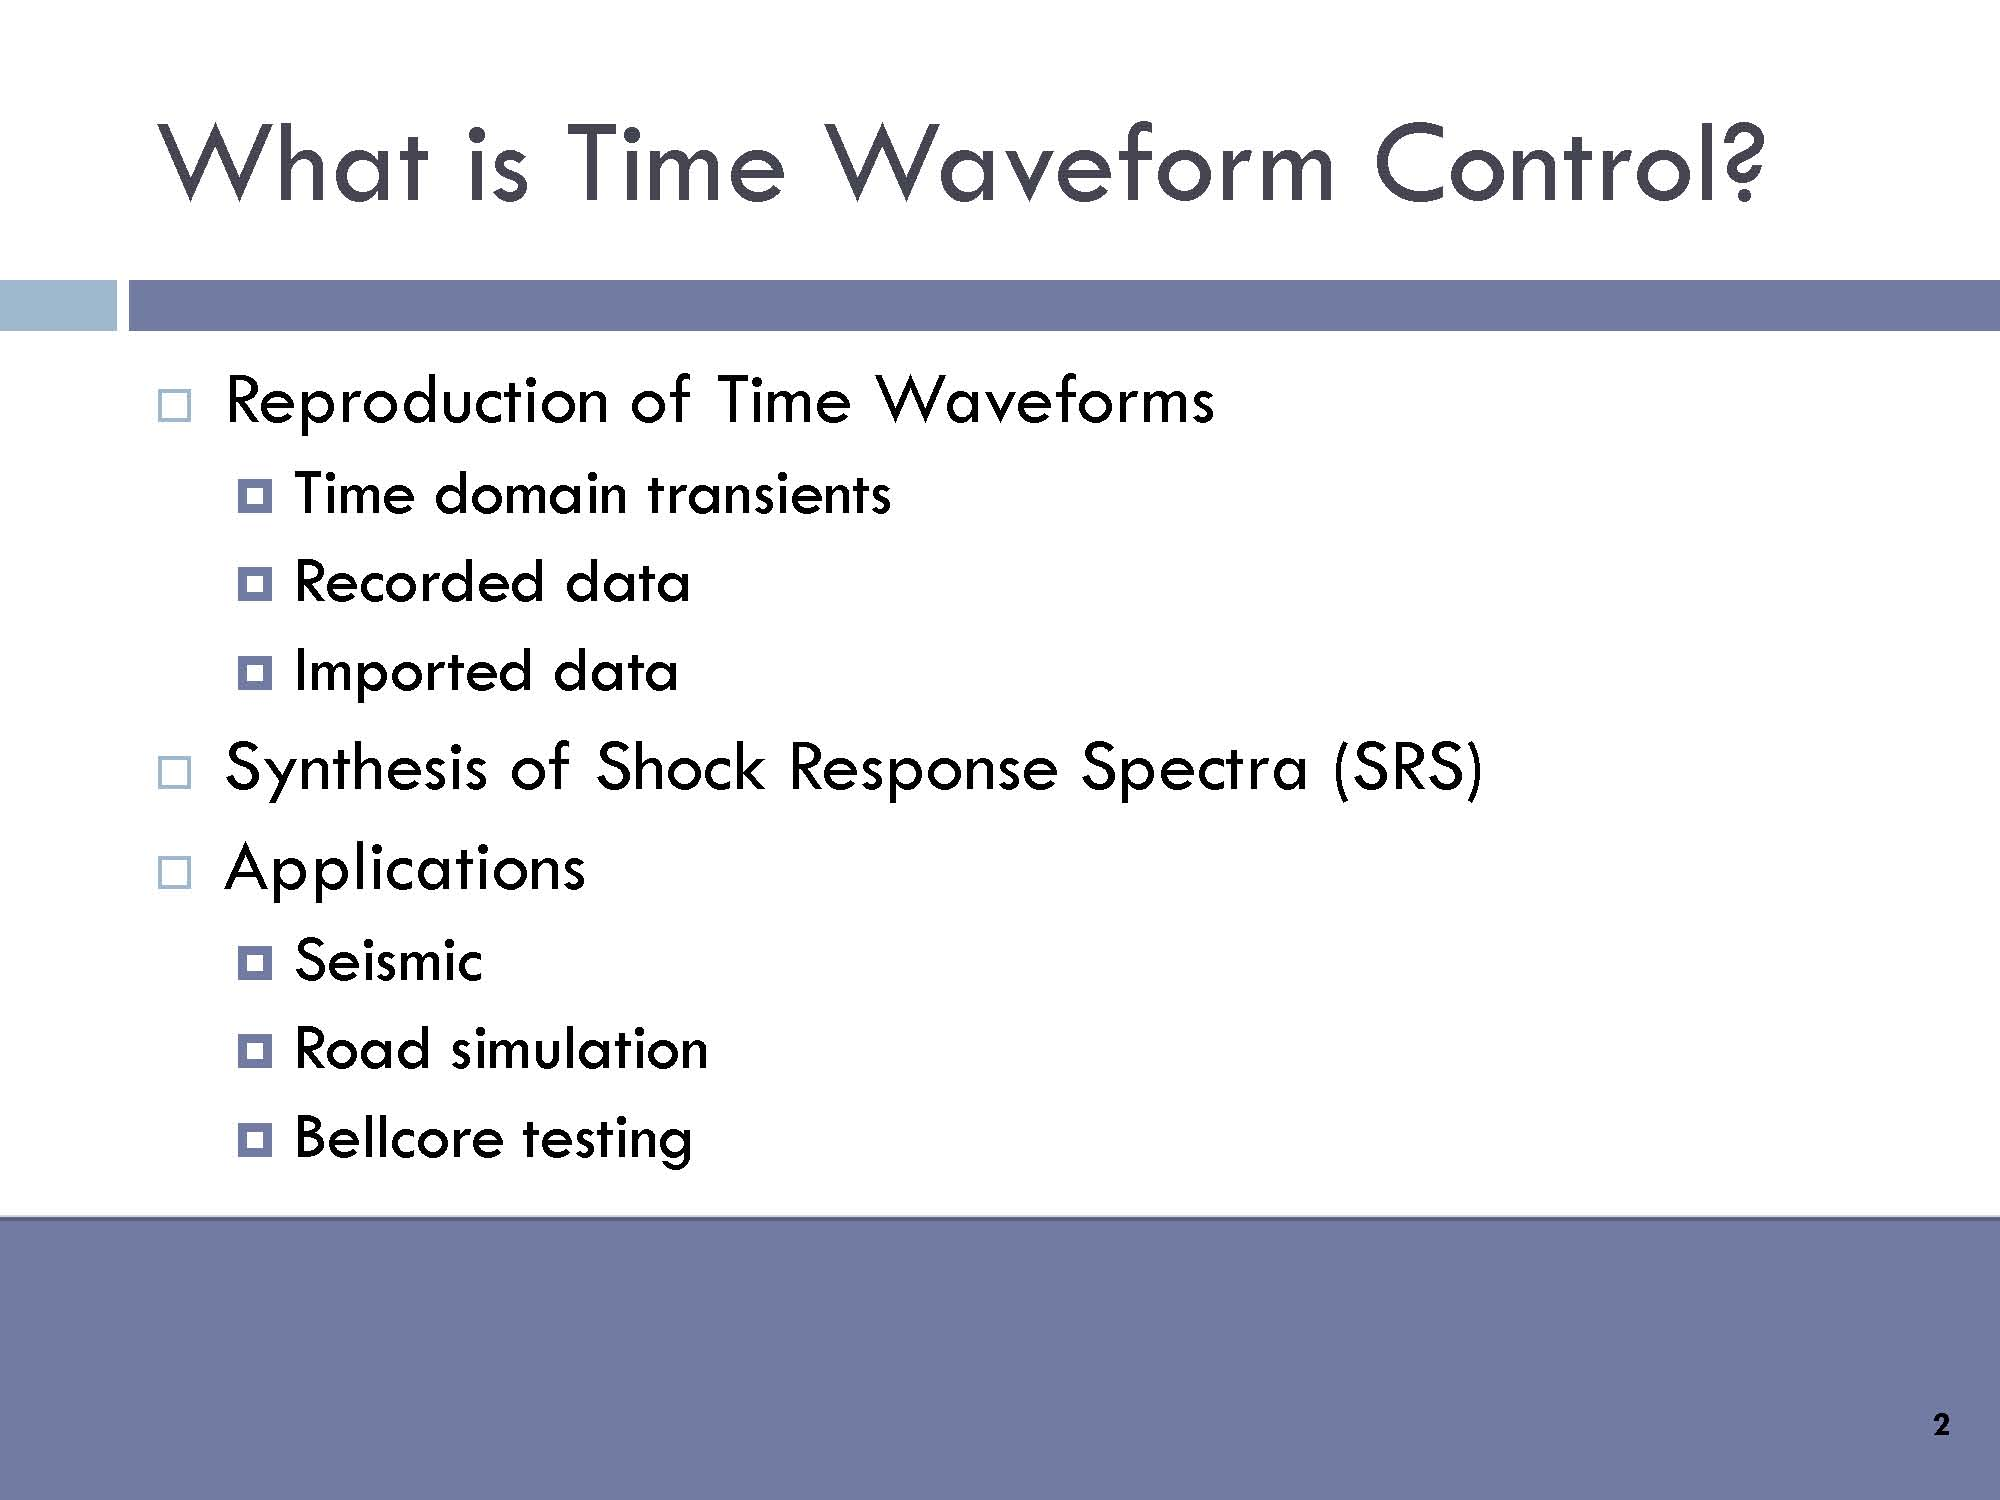 What is Time Waveform Control?    Reproduction of Time Waveforms: Time domain transients, recorded data, imported data. Synthesis of Shock Response Spectra (SRS). Applications: Seismic Road simulation and Bellcore testing.